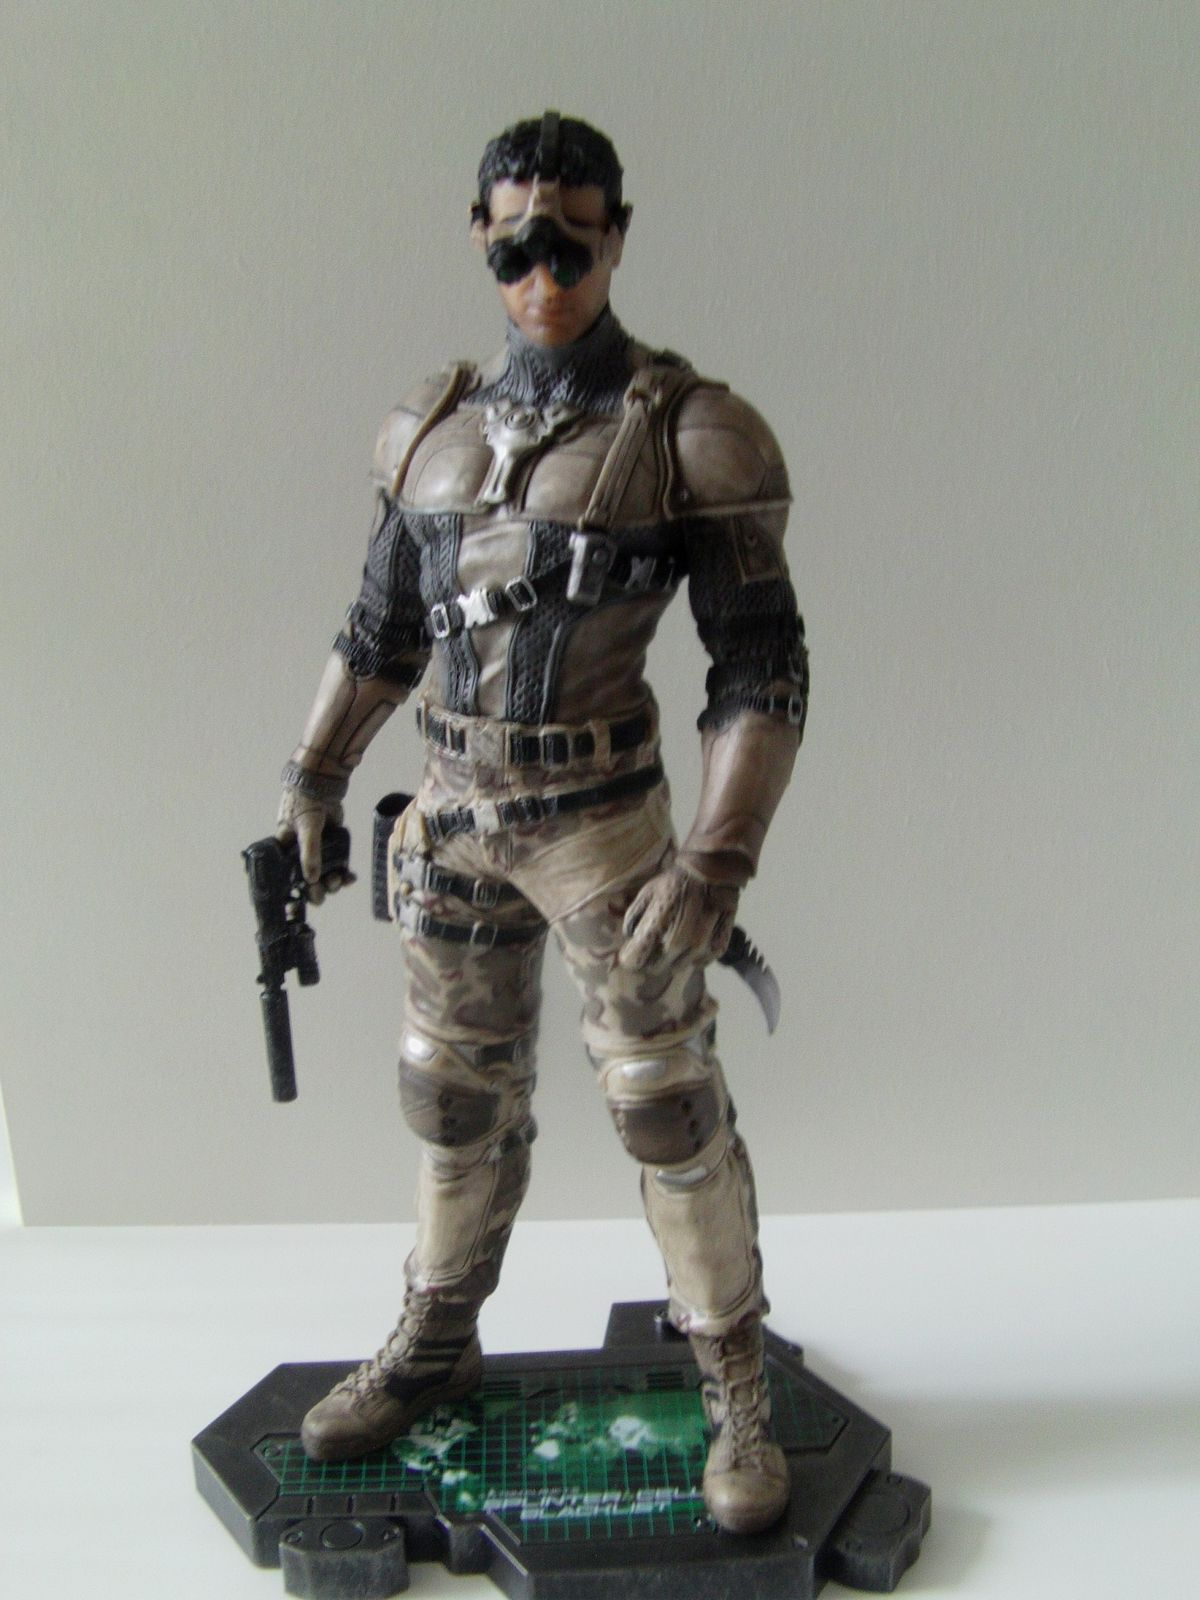 [Déballage] Figurine Splinter Cell Blacklist Sam Fisher Camouflage